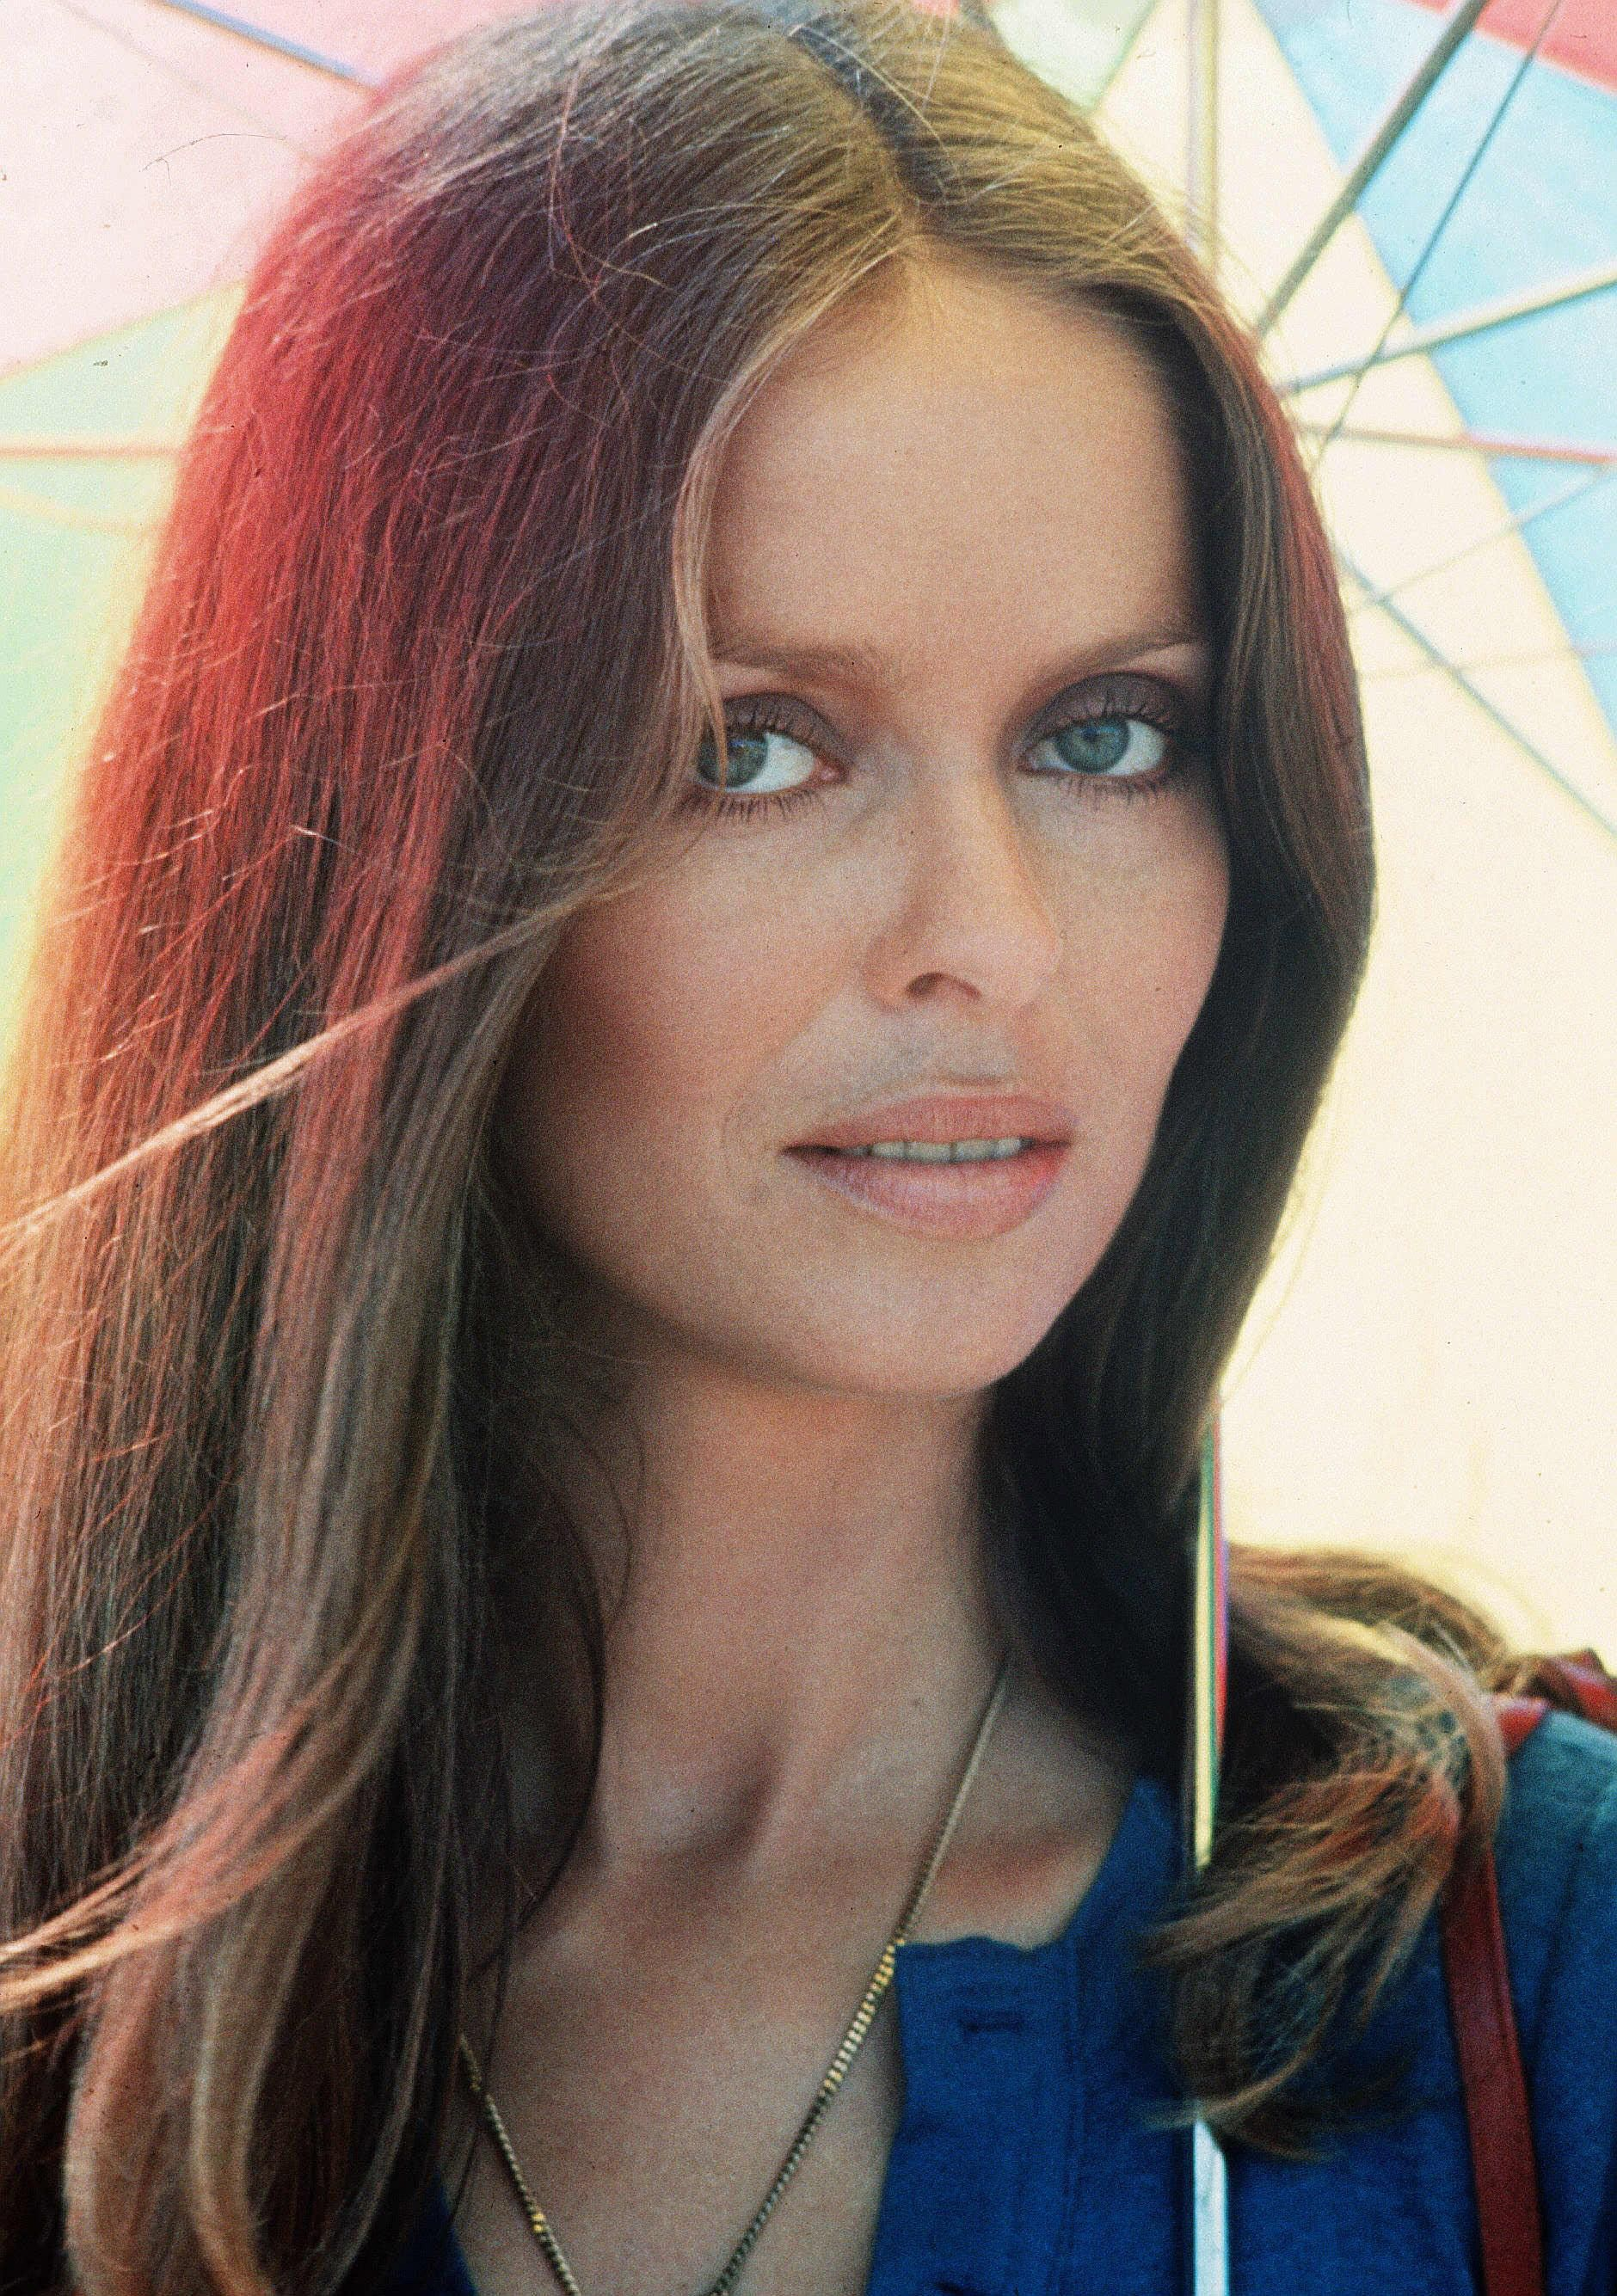 barbara bach images - Google Search | Beautiful Faces